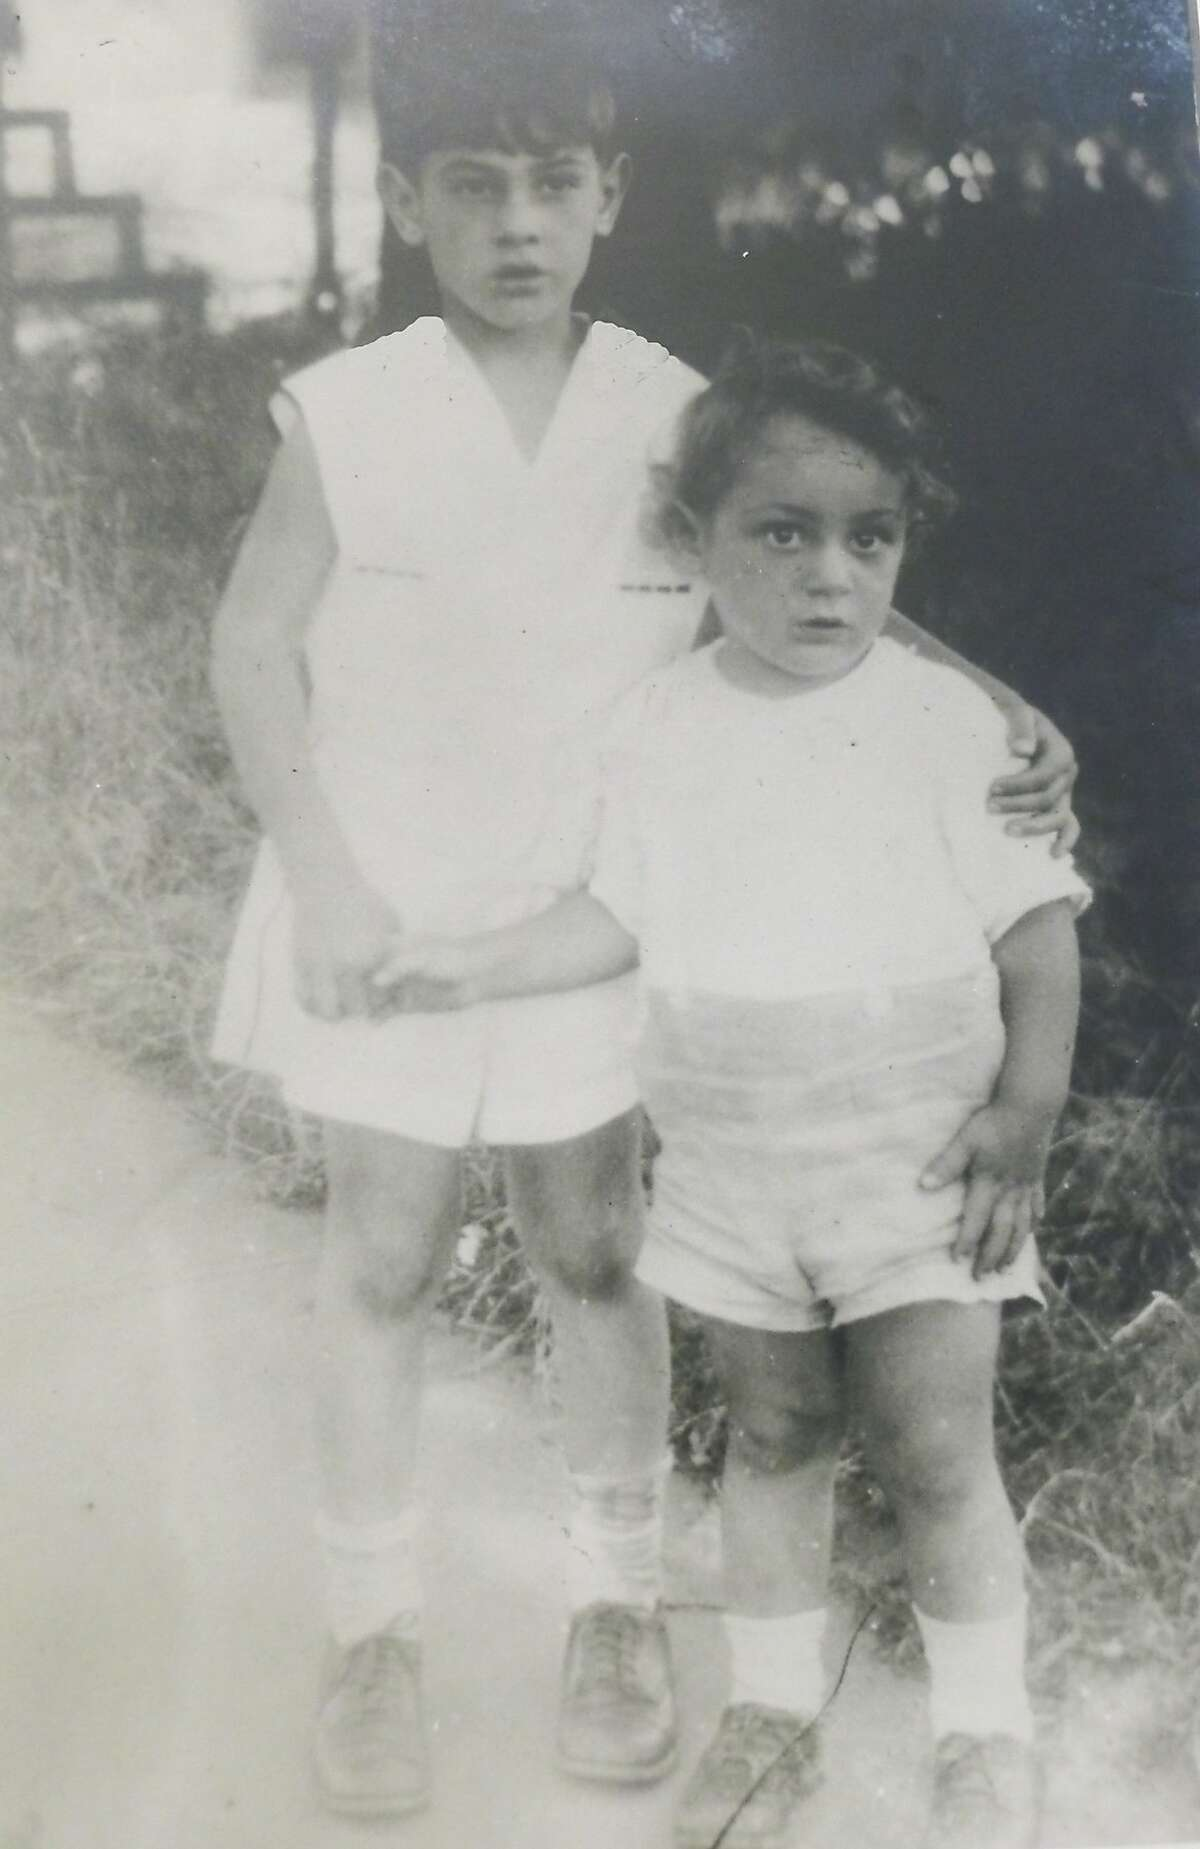 Harvey Milk (right), at age 3, with his brother, Robert, in 1933.